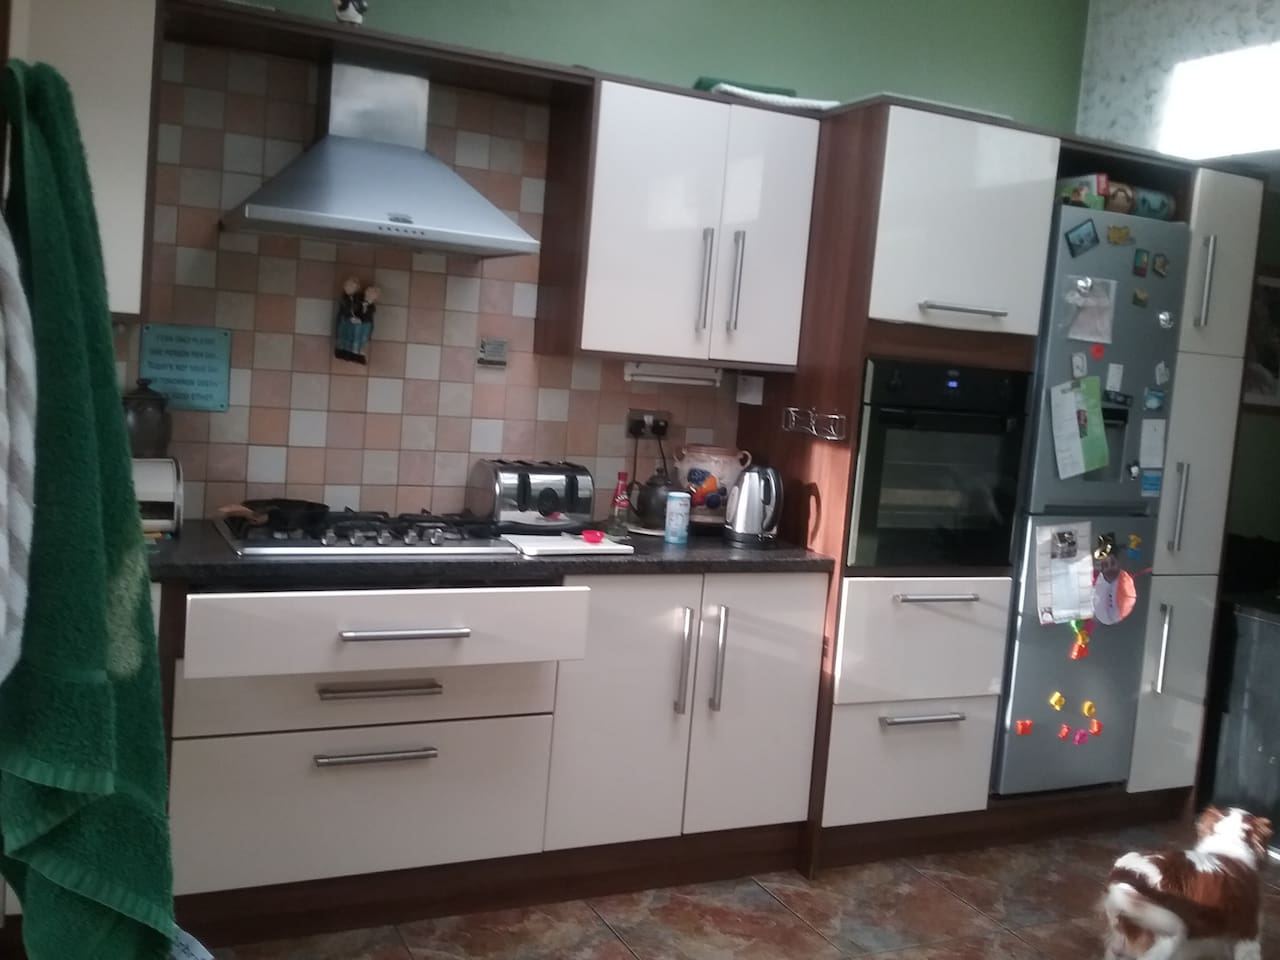 Kitchen area - guests are welcome to cook at agreed times on the day.